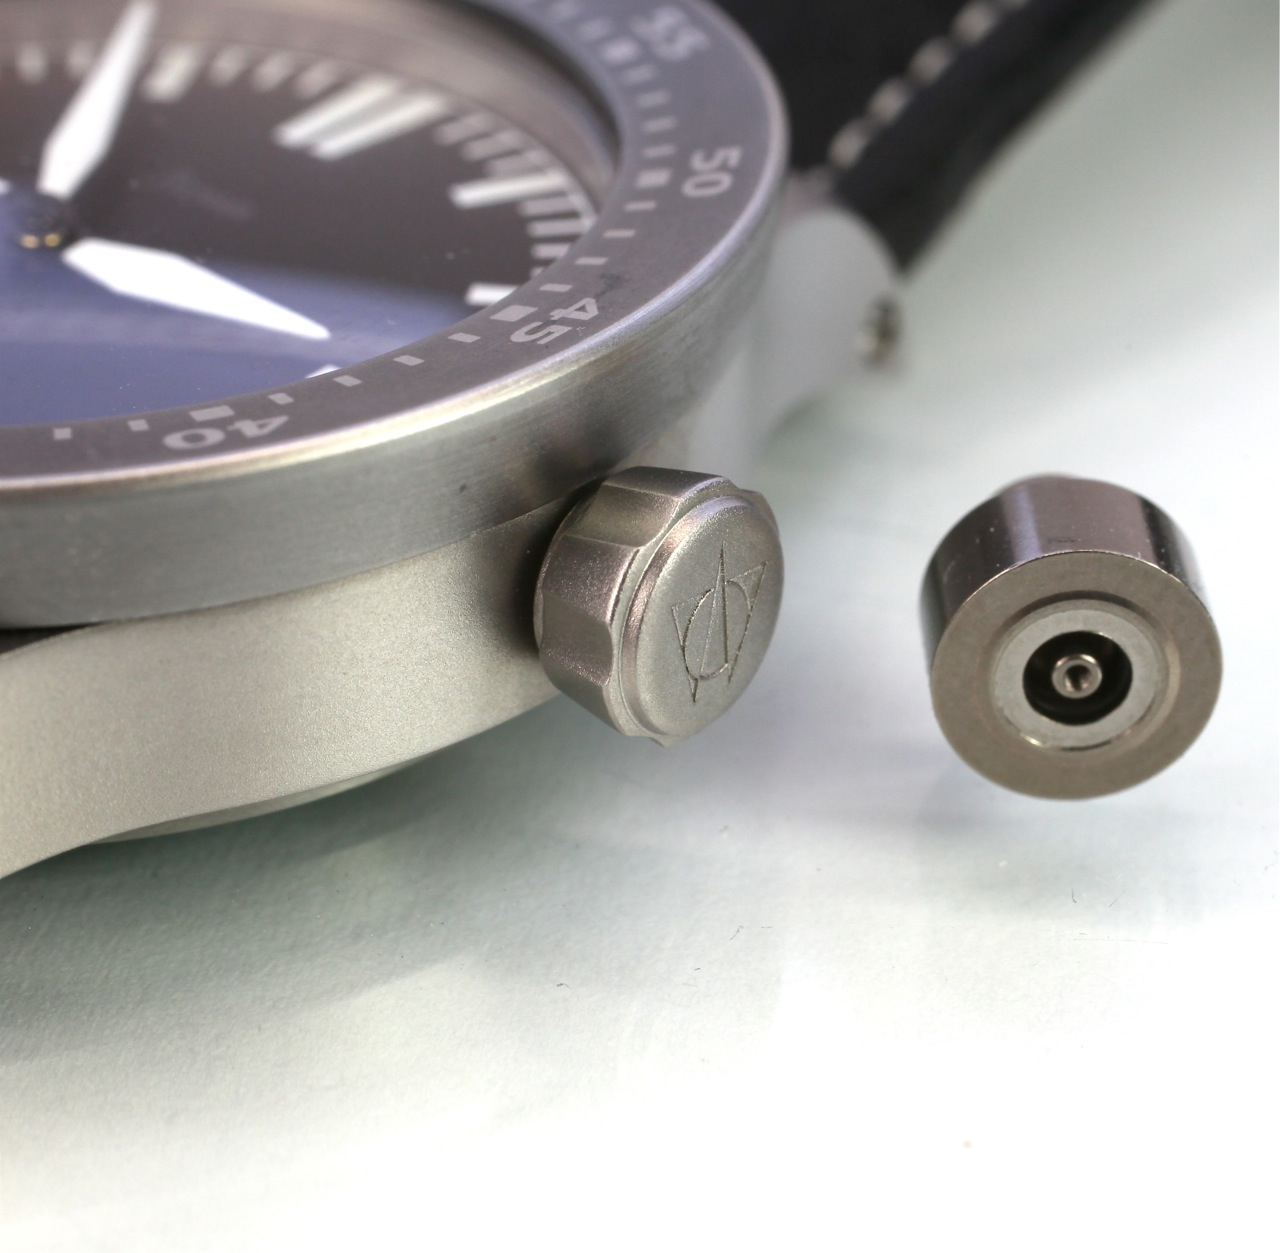 stowa - Stowa (attention du lourd...) - Page 3 1039900d1365448145-new-stowa-modell-testaf-deleted-thread-official-announcement-j%F6rg-schauer-img_4983_2